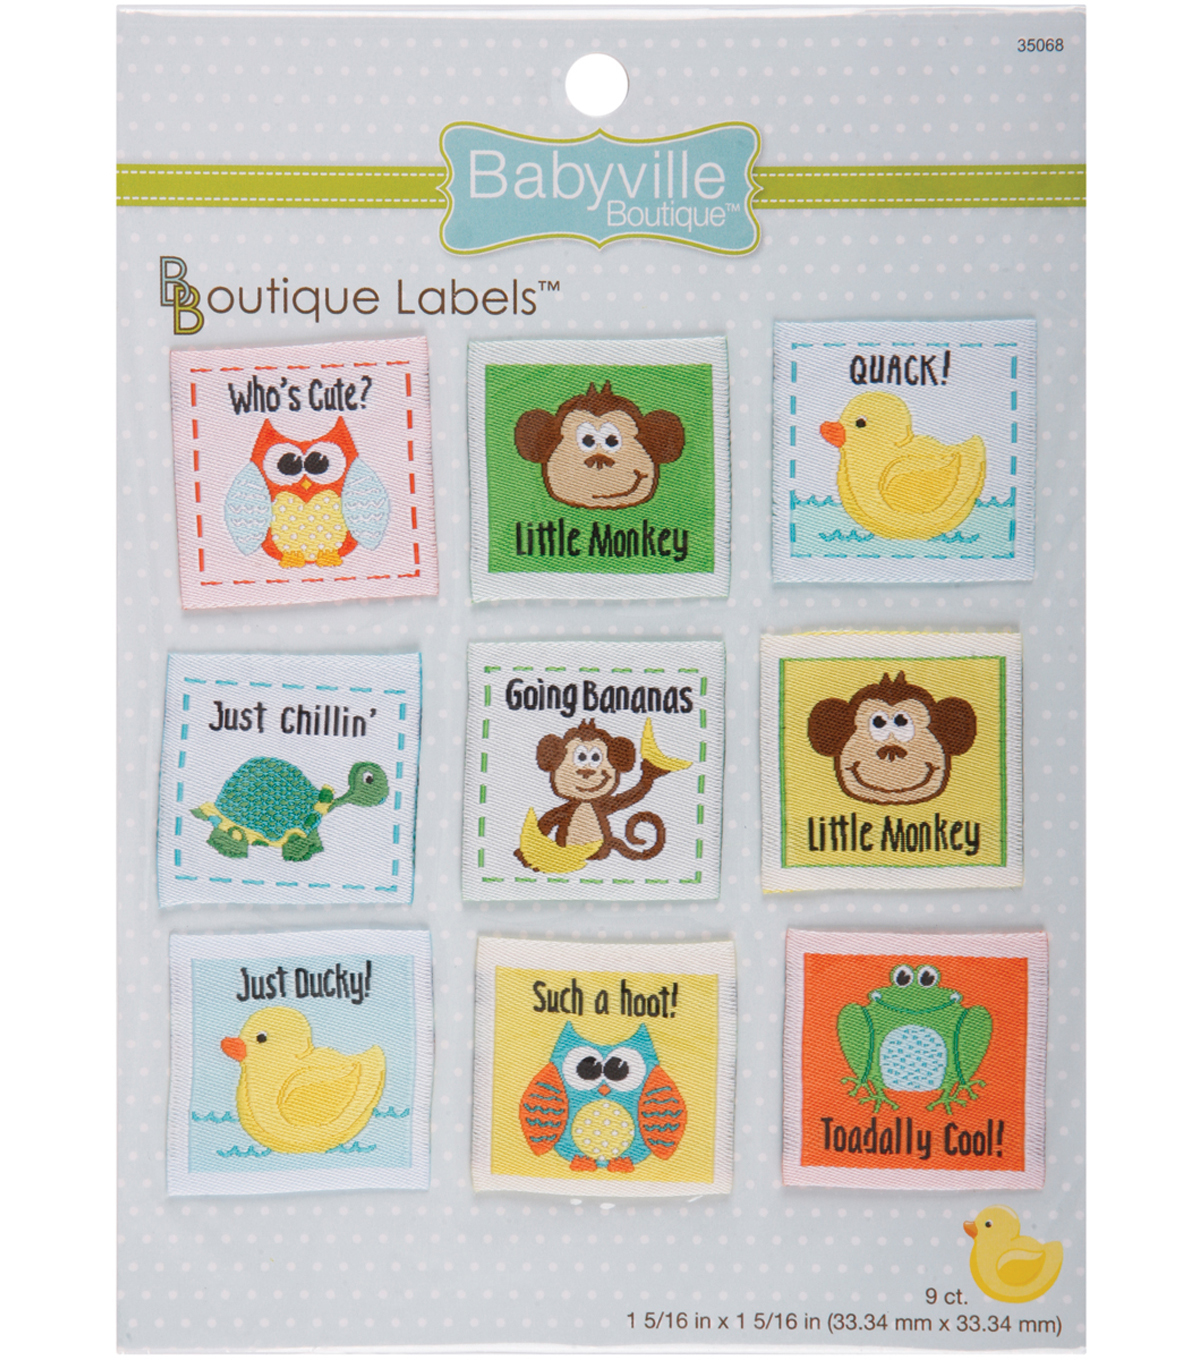 Babyville Boutique 1.31\u0022 x 1.31\u0022 Labels Gender Neutral 9pcs